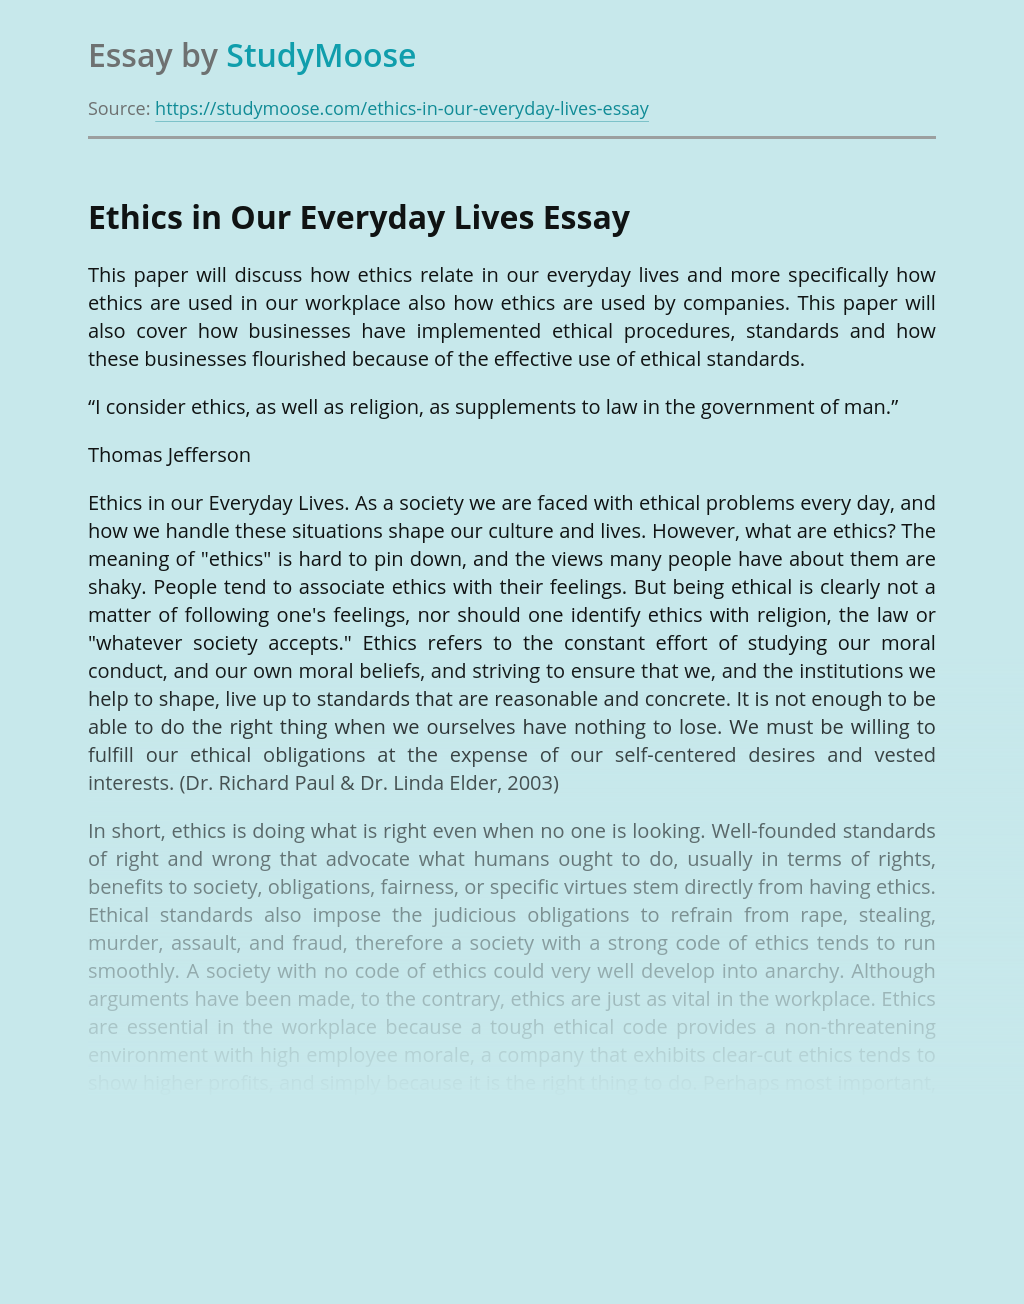 Ethics in Our Everyday Lives